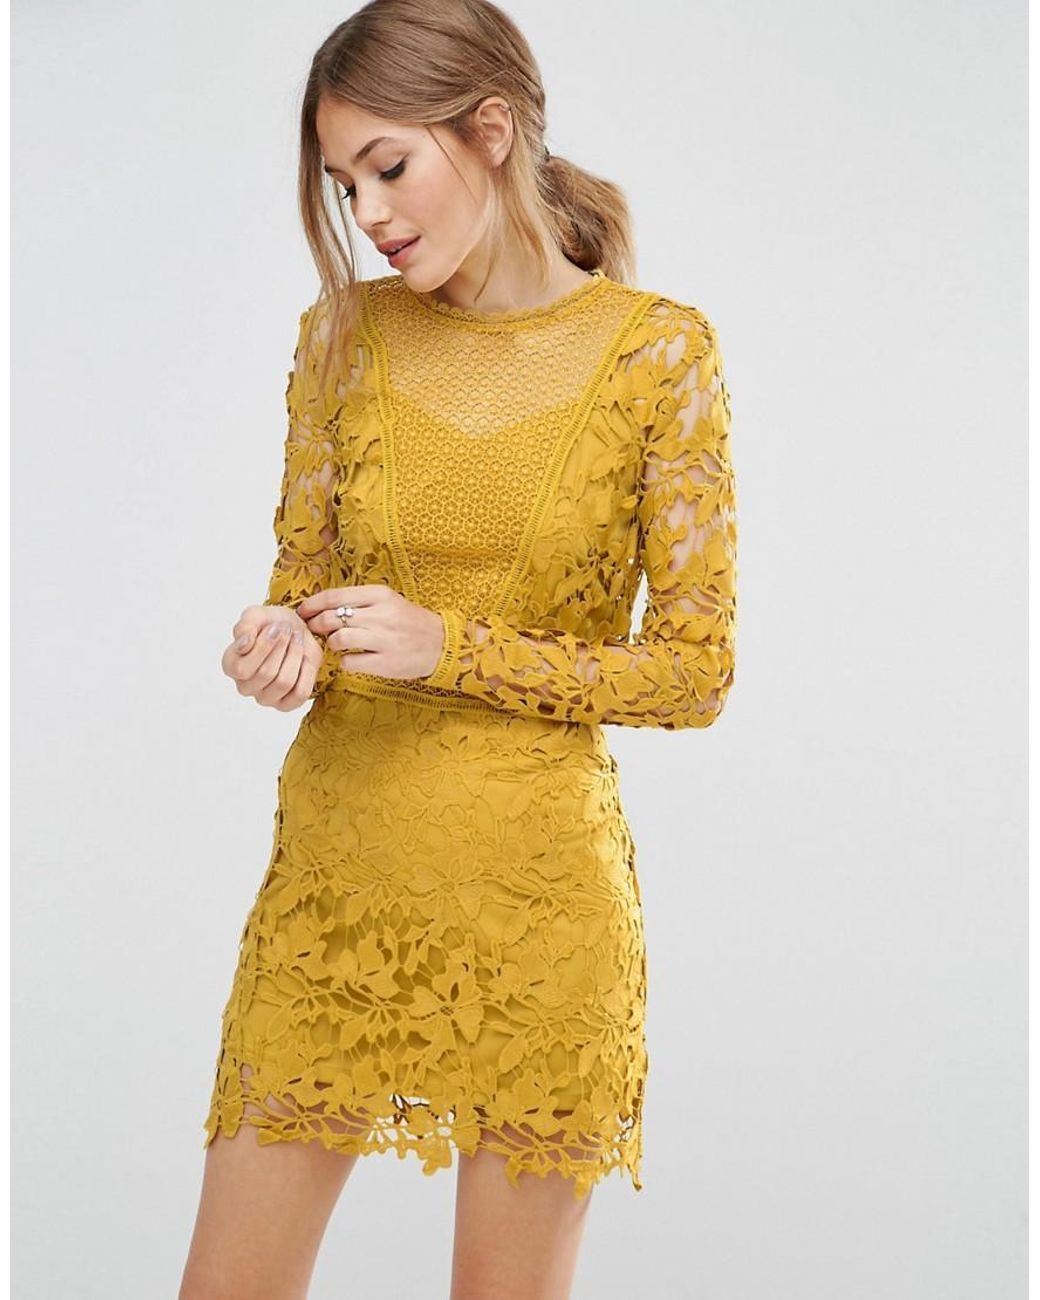 66843fdab47a4 Women s Yellow Mustard Lace Long Sleeve Panelled Shift Dress in 2019 ...